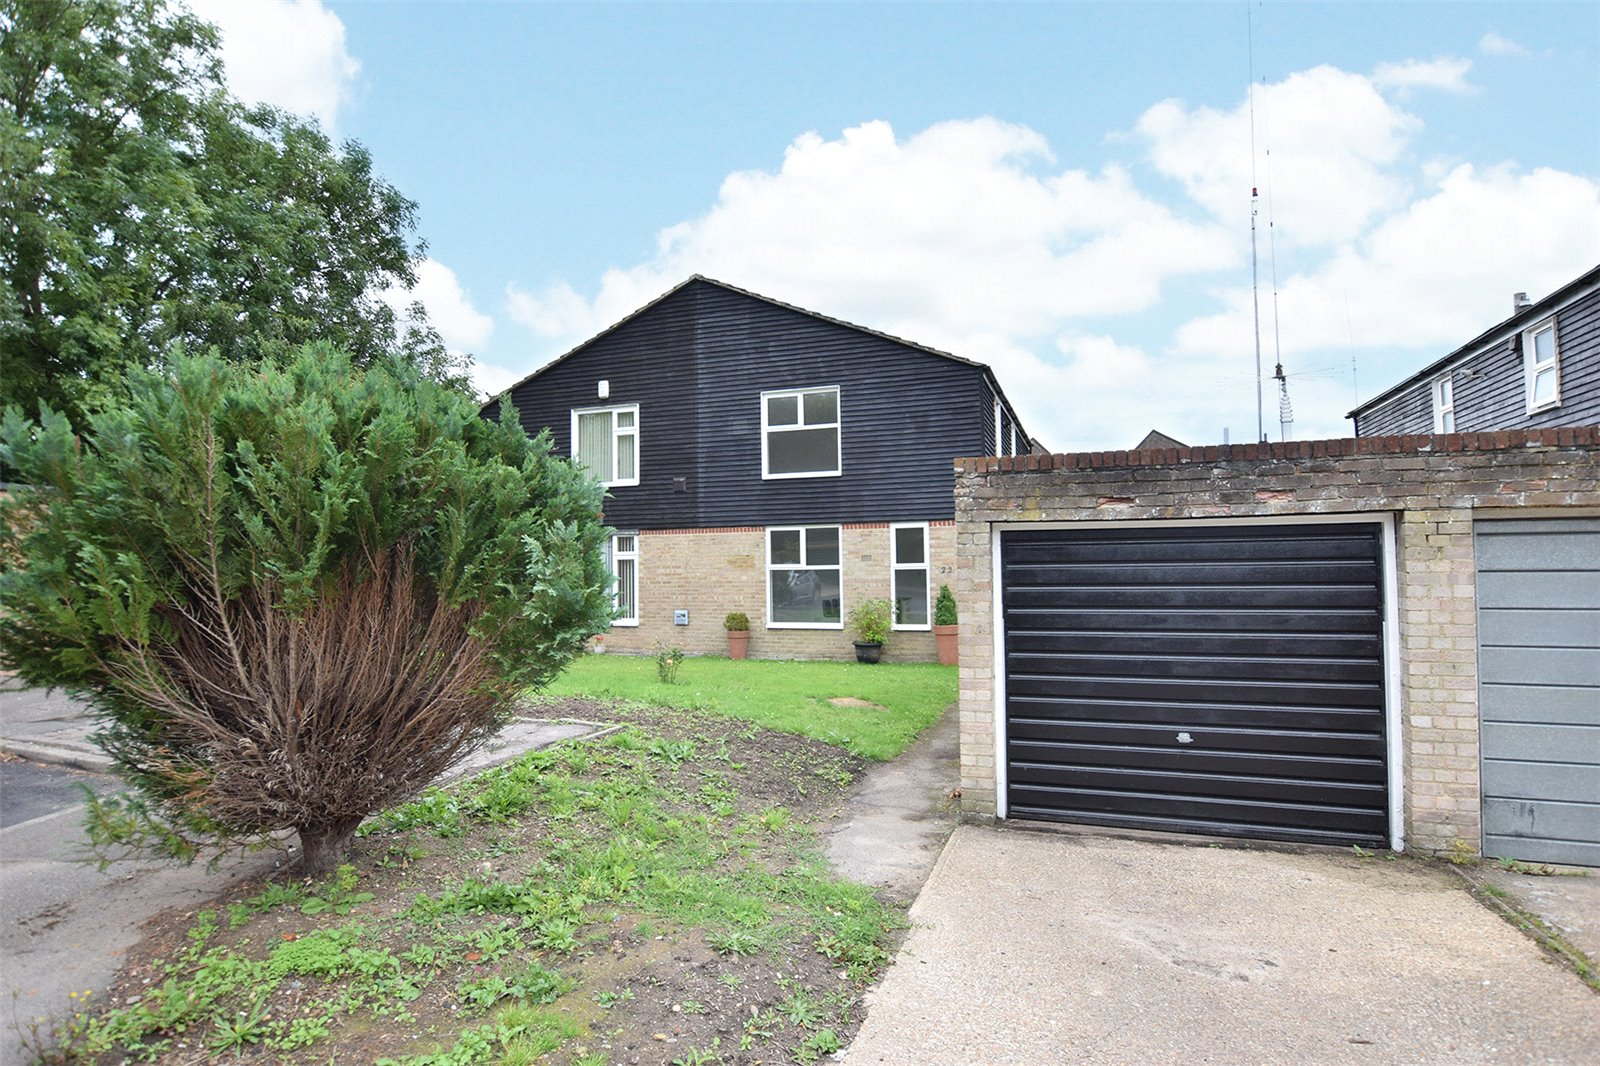 3 Bedrooms Semi Detached House for sale in Coningsby, Bracknell, Berkshire, RG12